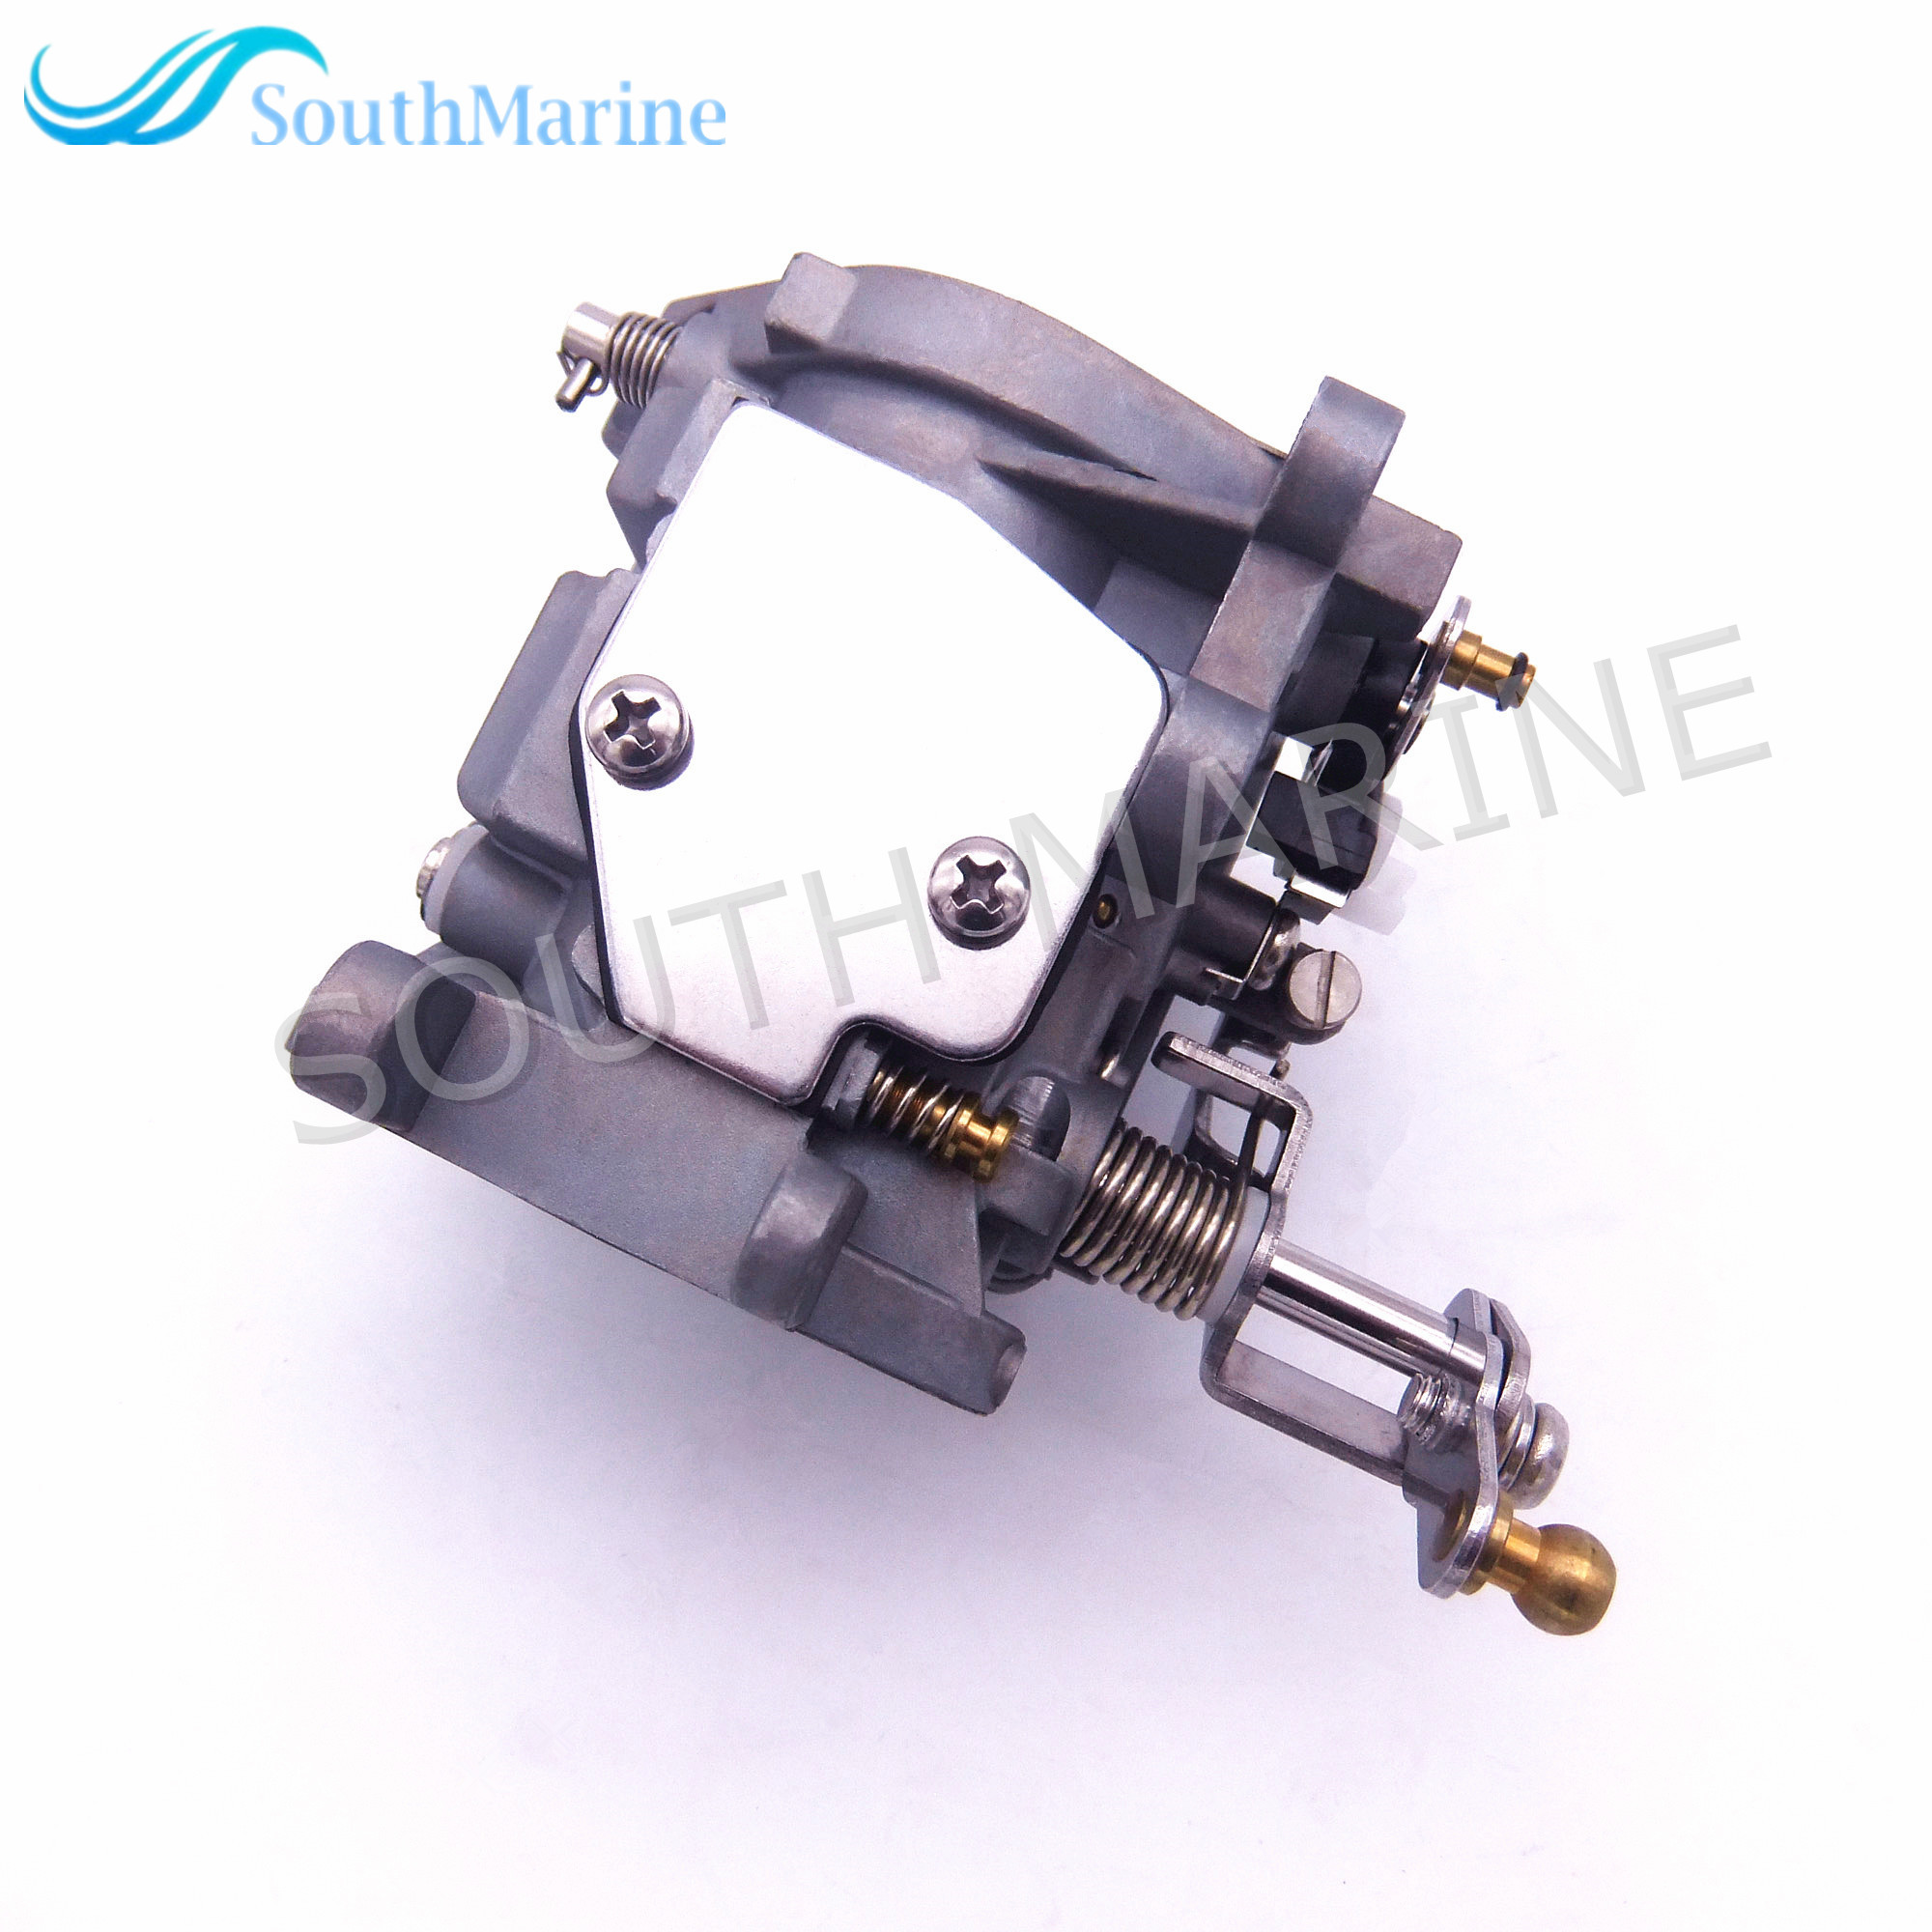 Outboard Engine Boat Motor Carburetor Assy 69P-14301-00  69S-14301-00  for Yahama 2-stroke E25B E30H  25B 30H Free Shipping aluminum water cool flange fits 26 29cc qj zenoah rcmk cy gas engine for rc boat